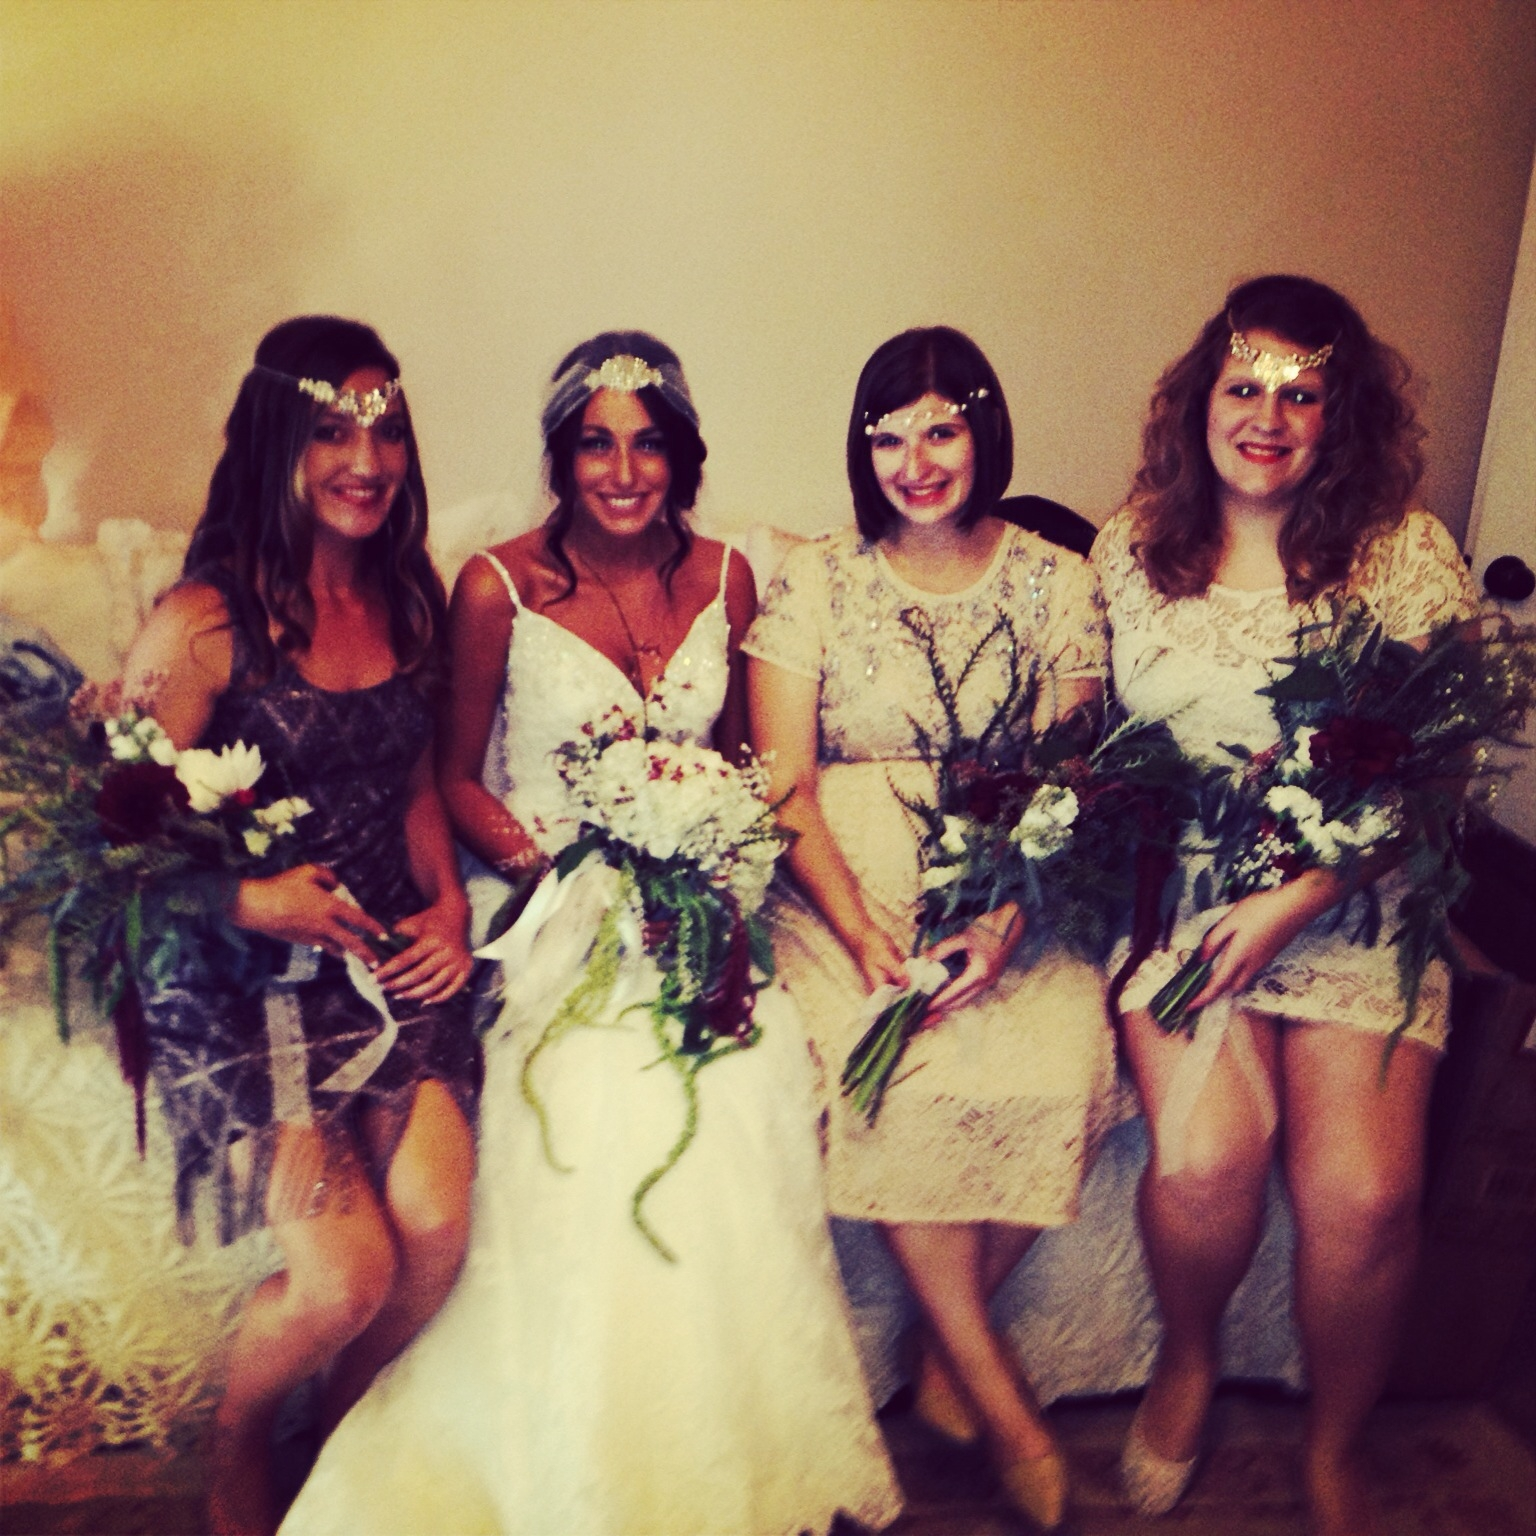 My cousin, Ashley, had a 1920's theme for her wedding. Pictured are me, Ashley, Kristy and Kerri.